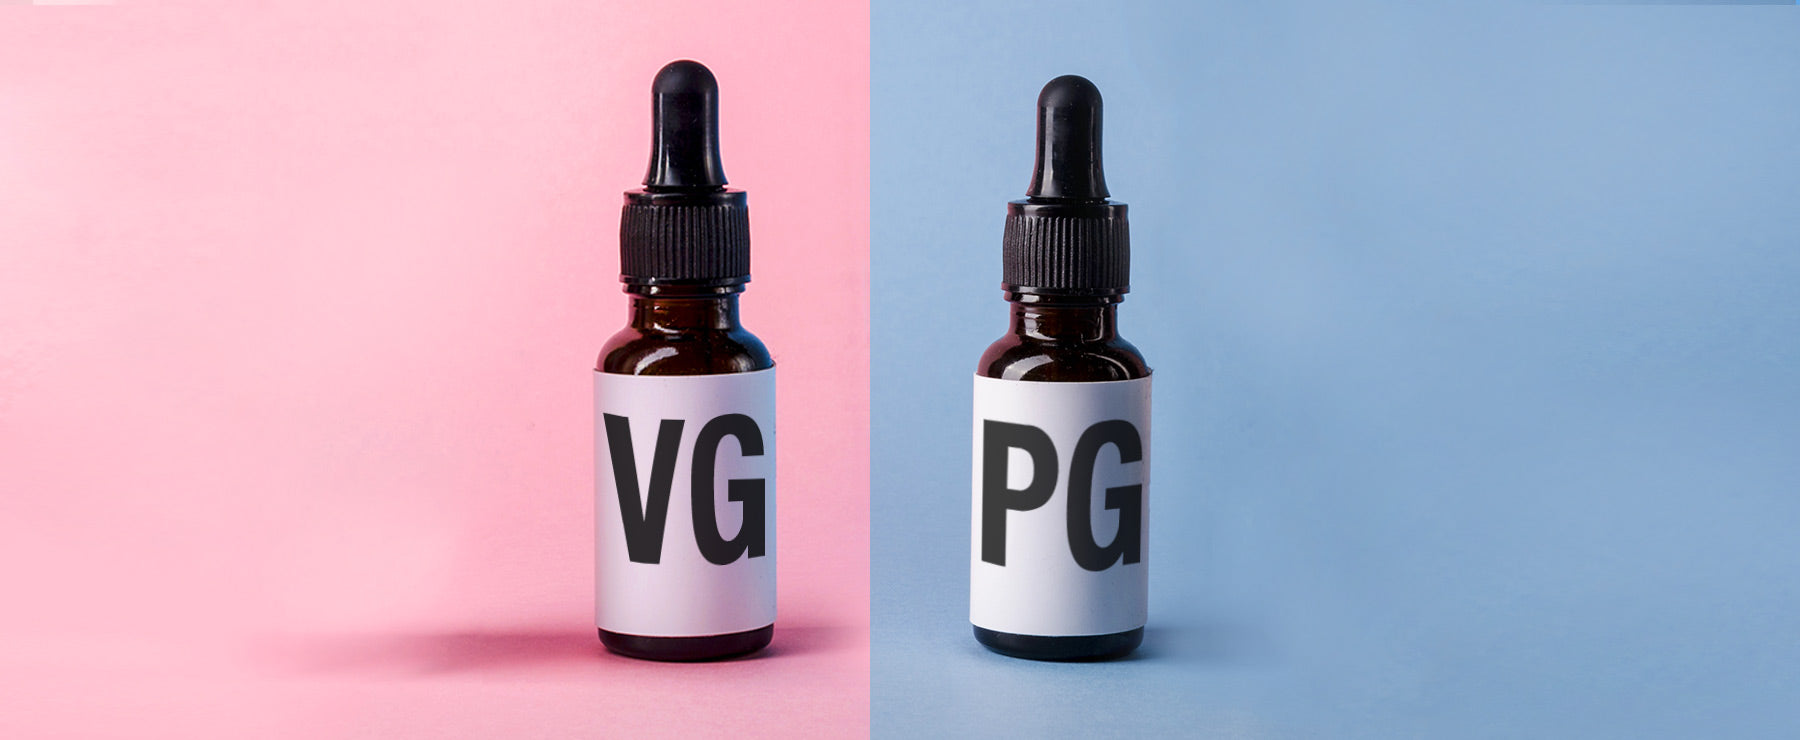 Bottle of VG and PG